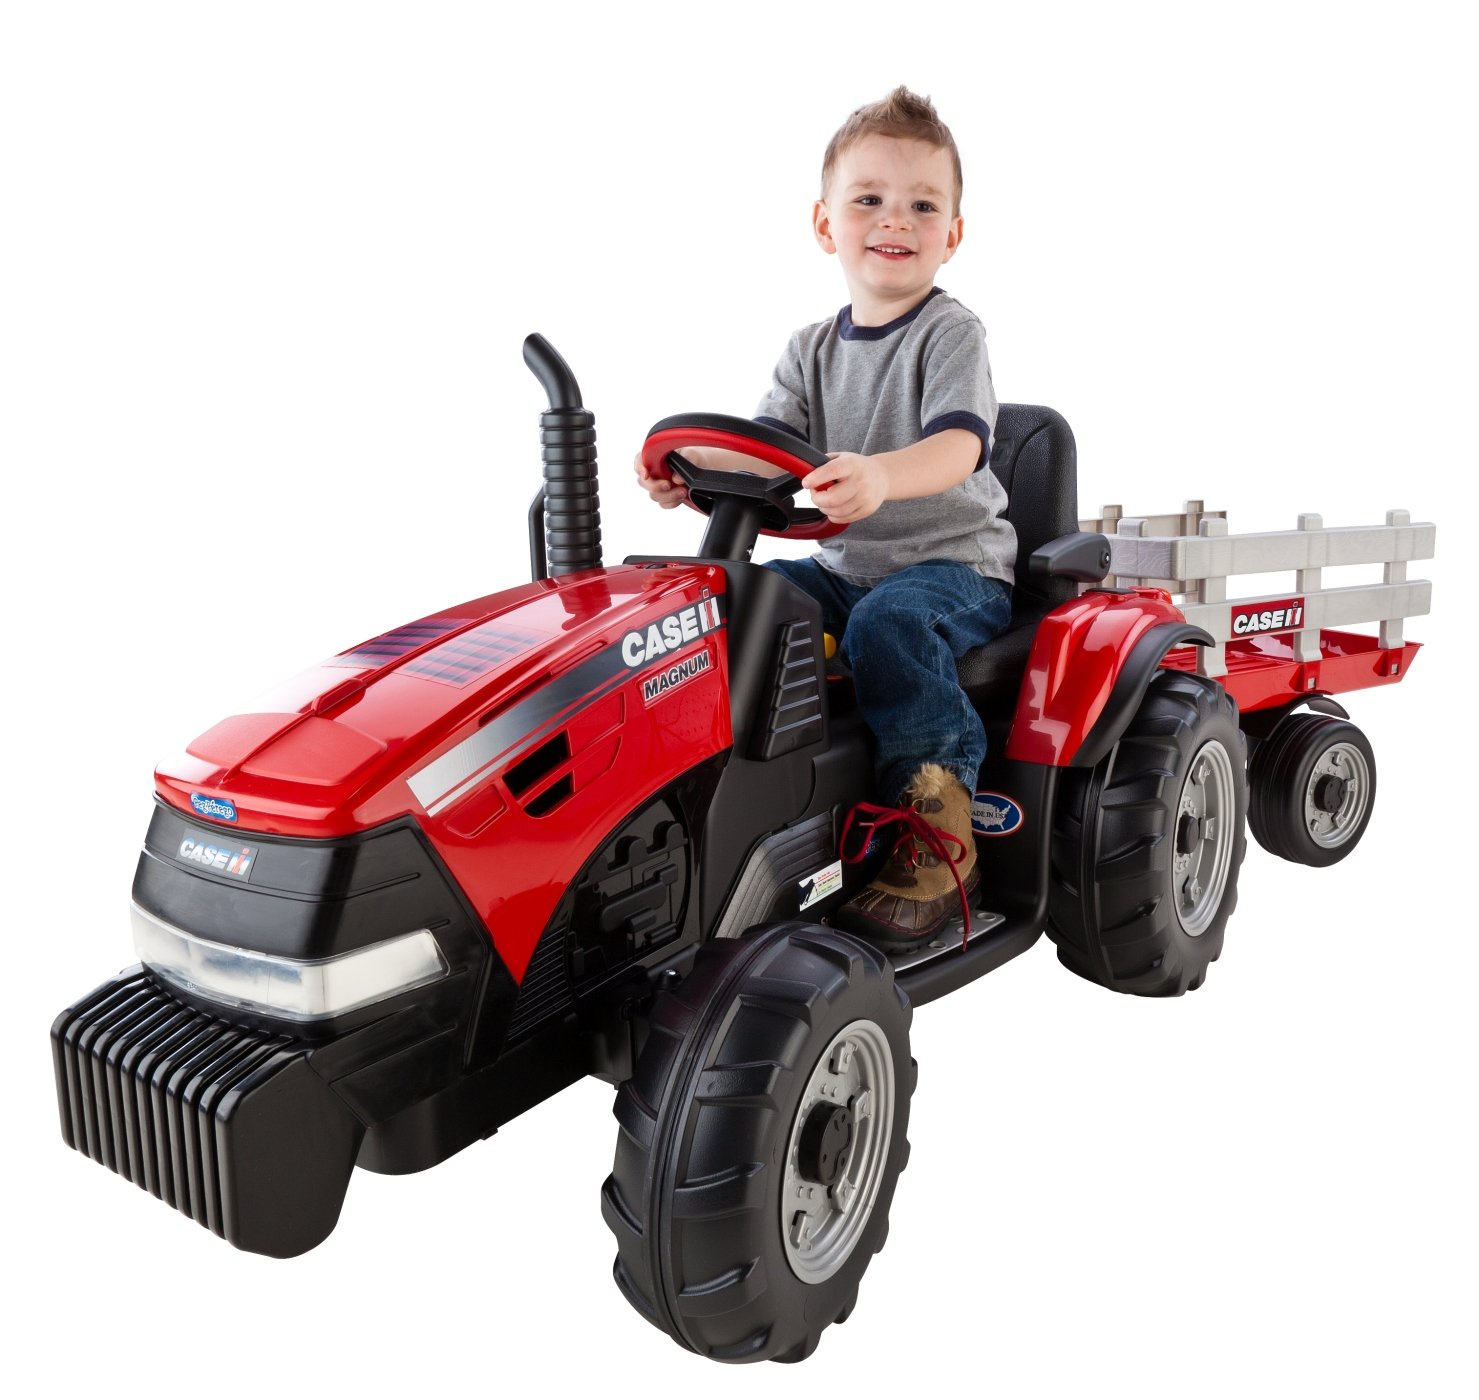 Peg Perego Case IH Magnum Tractor/Trailer by Peg Perego